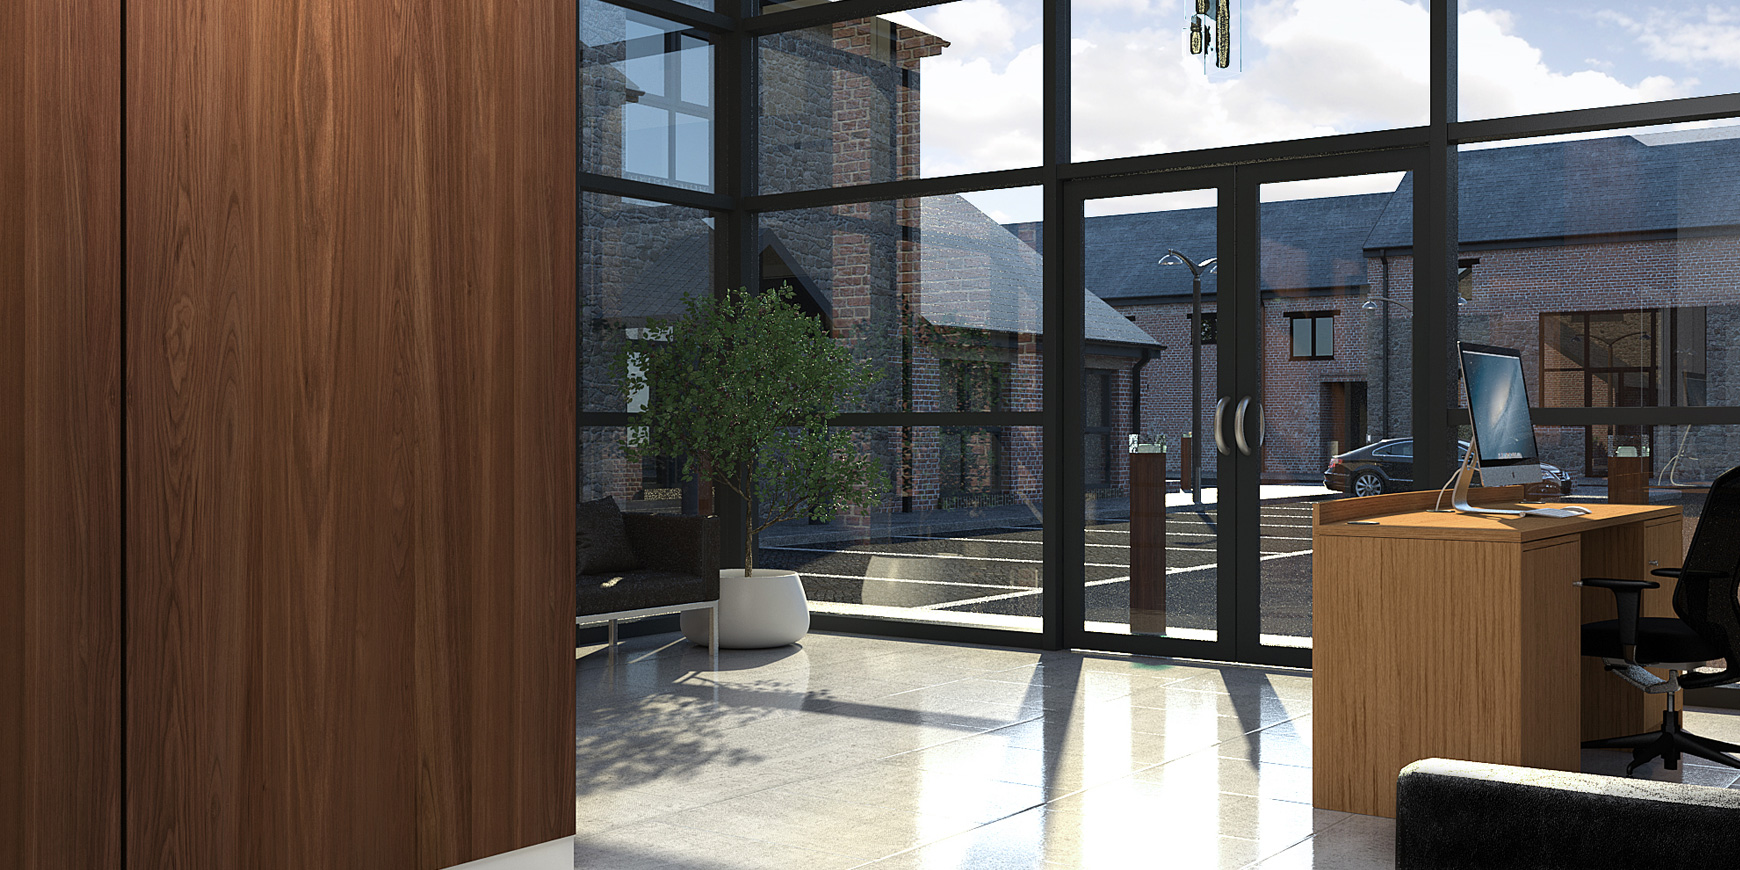 3D architectural visualisation of Eckland Lodge offices